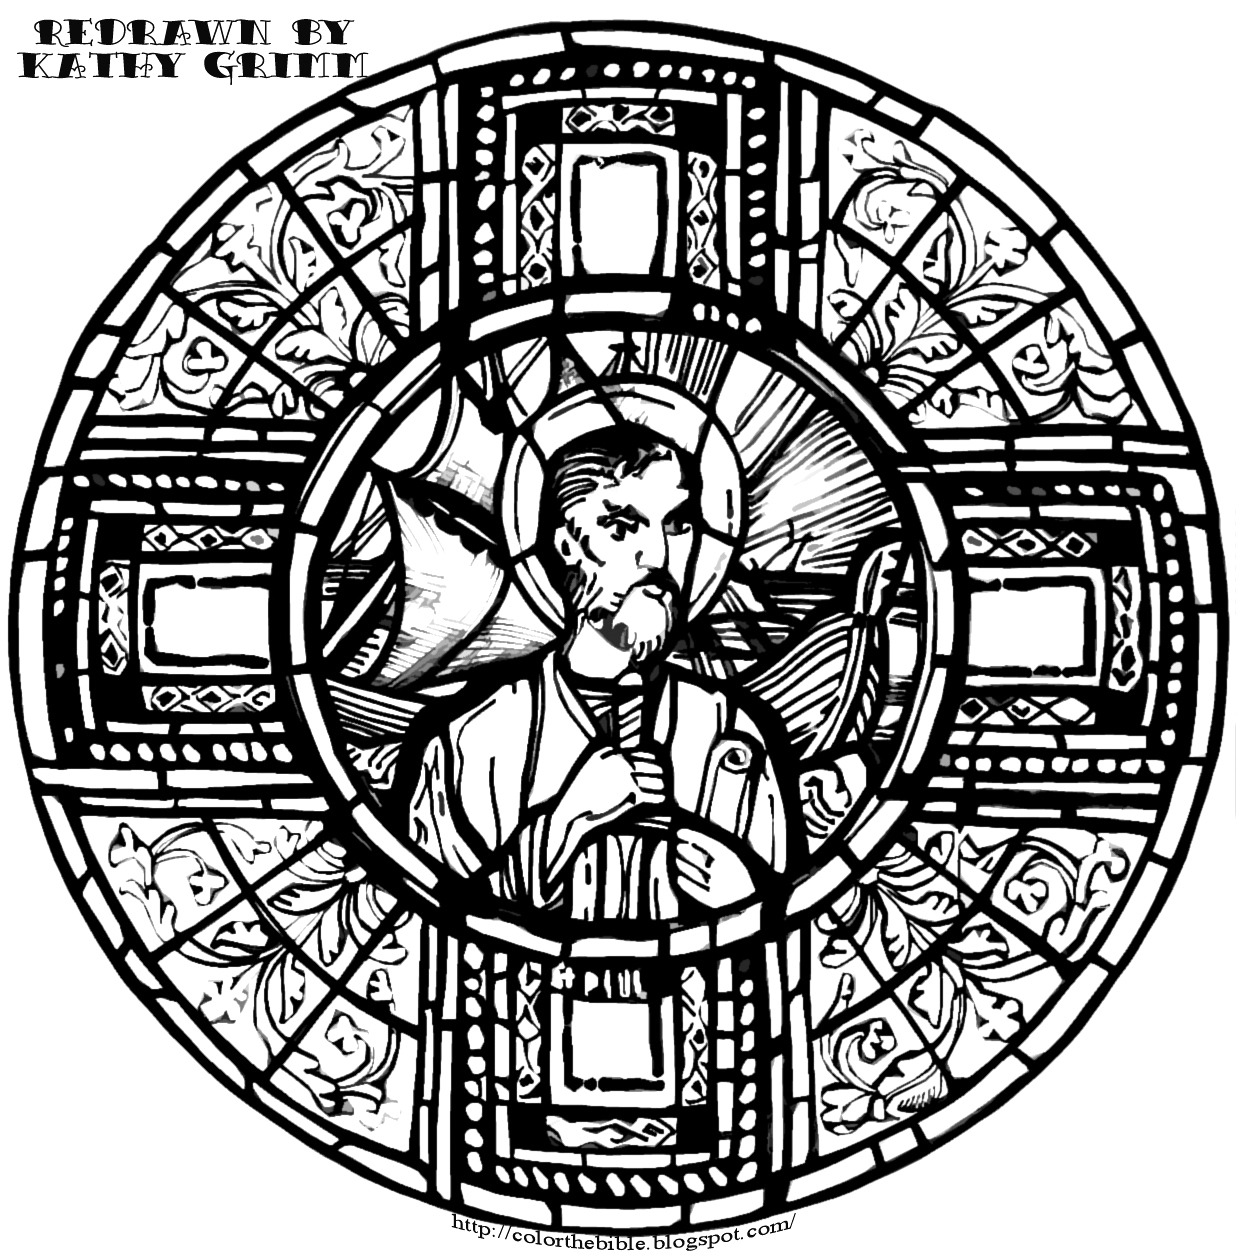 The apostle paul color the bible for Apostle paul coloring page